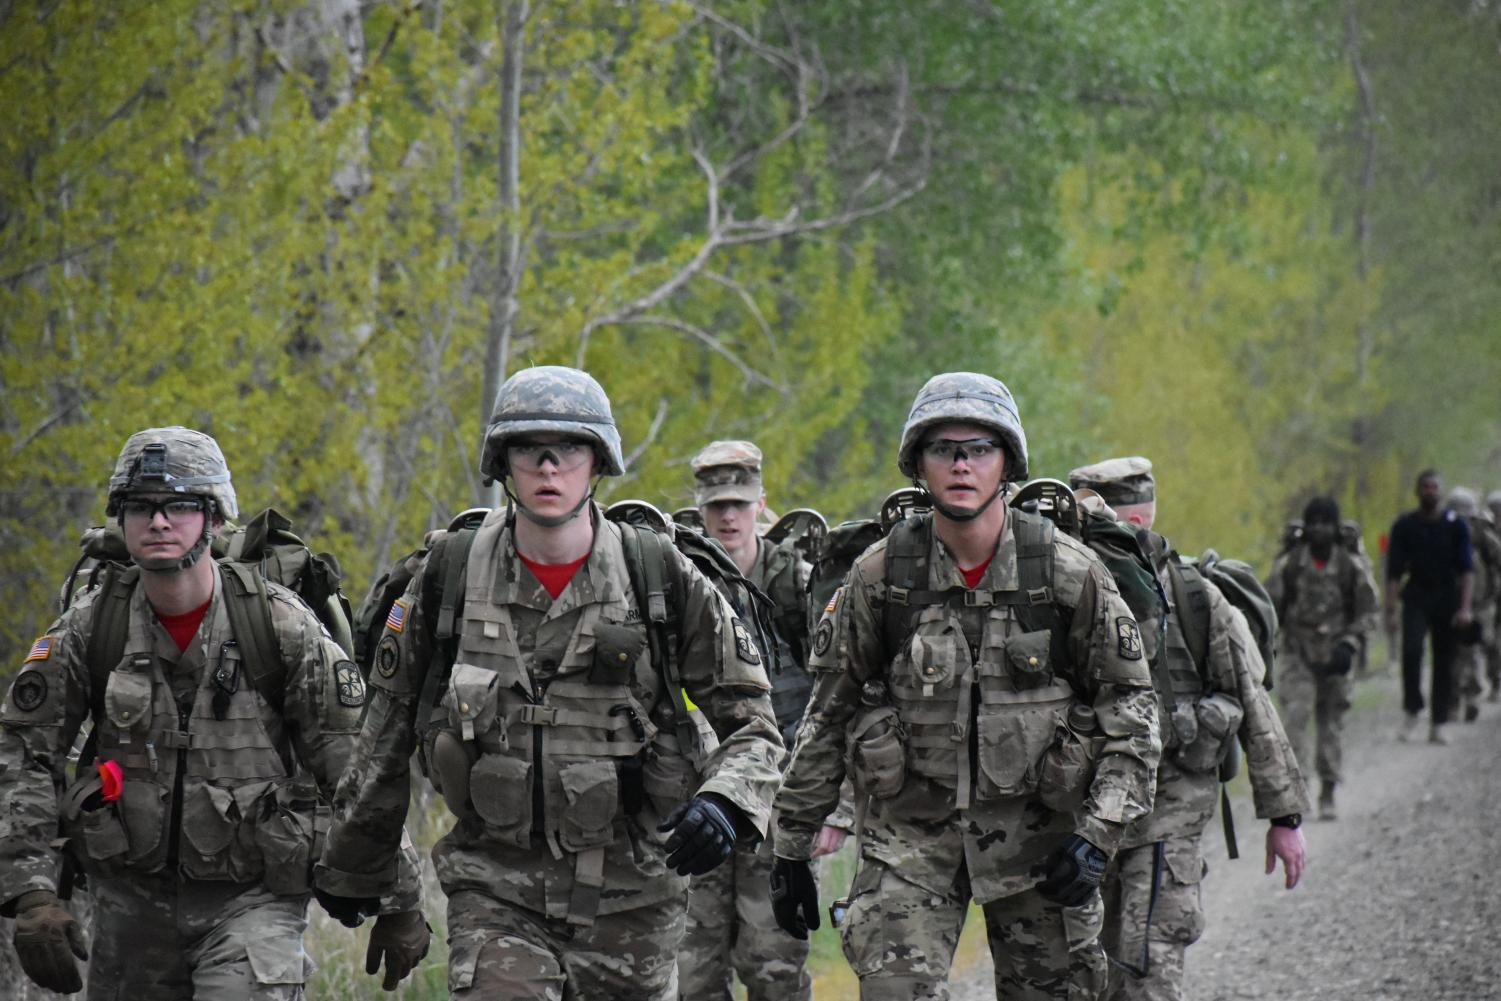 The John Wayne Trail hike is one of the methods ROTC uses to help cadets stay in combat-ready shape. Cadets must trek six miles with 30-40 pound backpacks.